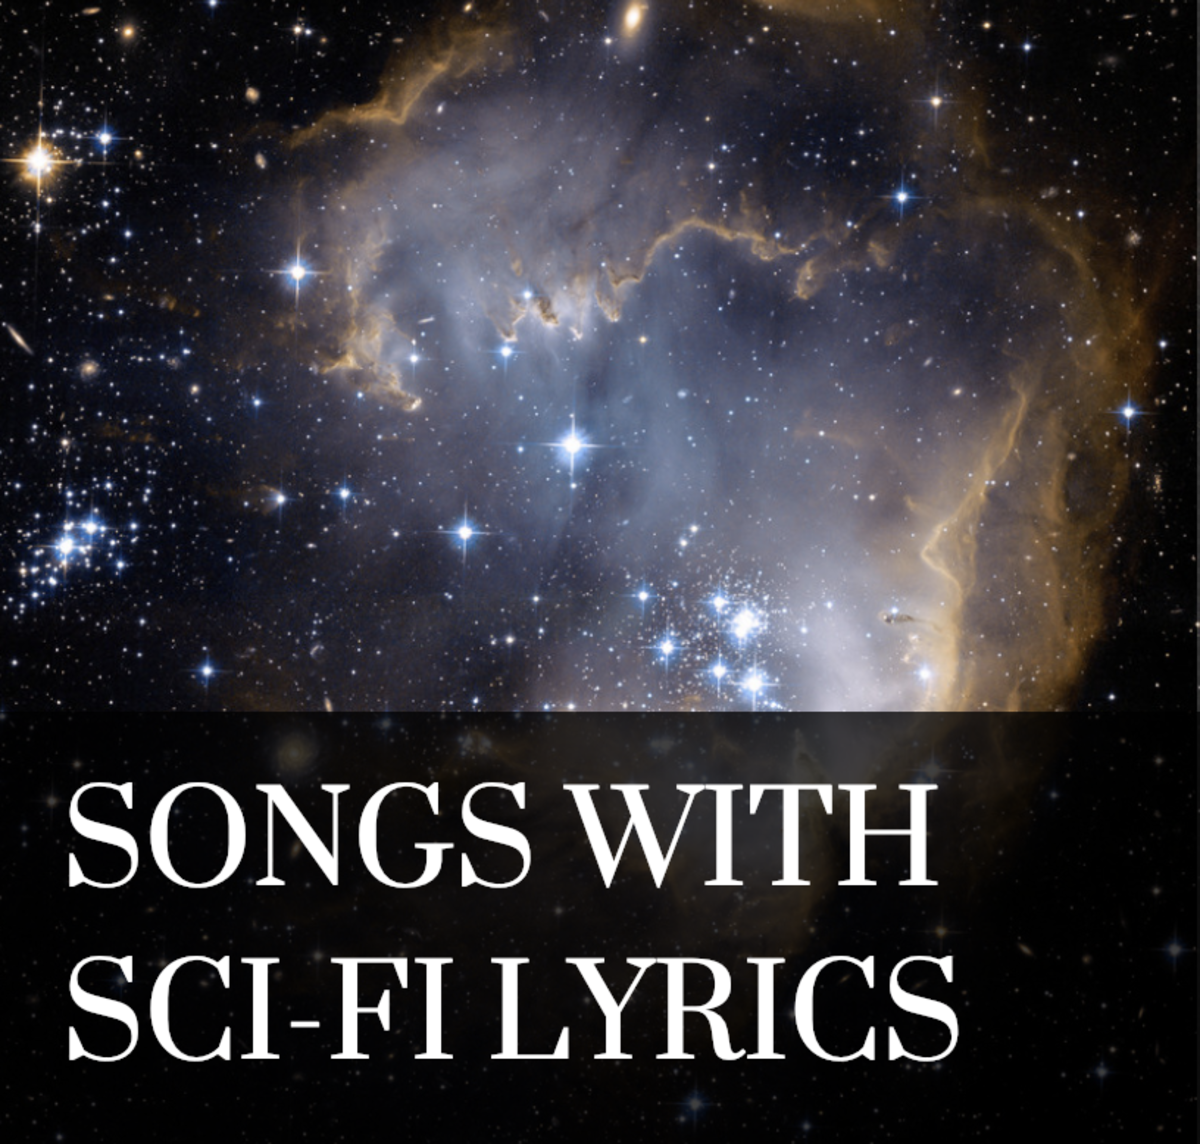 10-sci-fi-tales-found-in-a-song